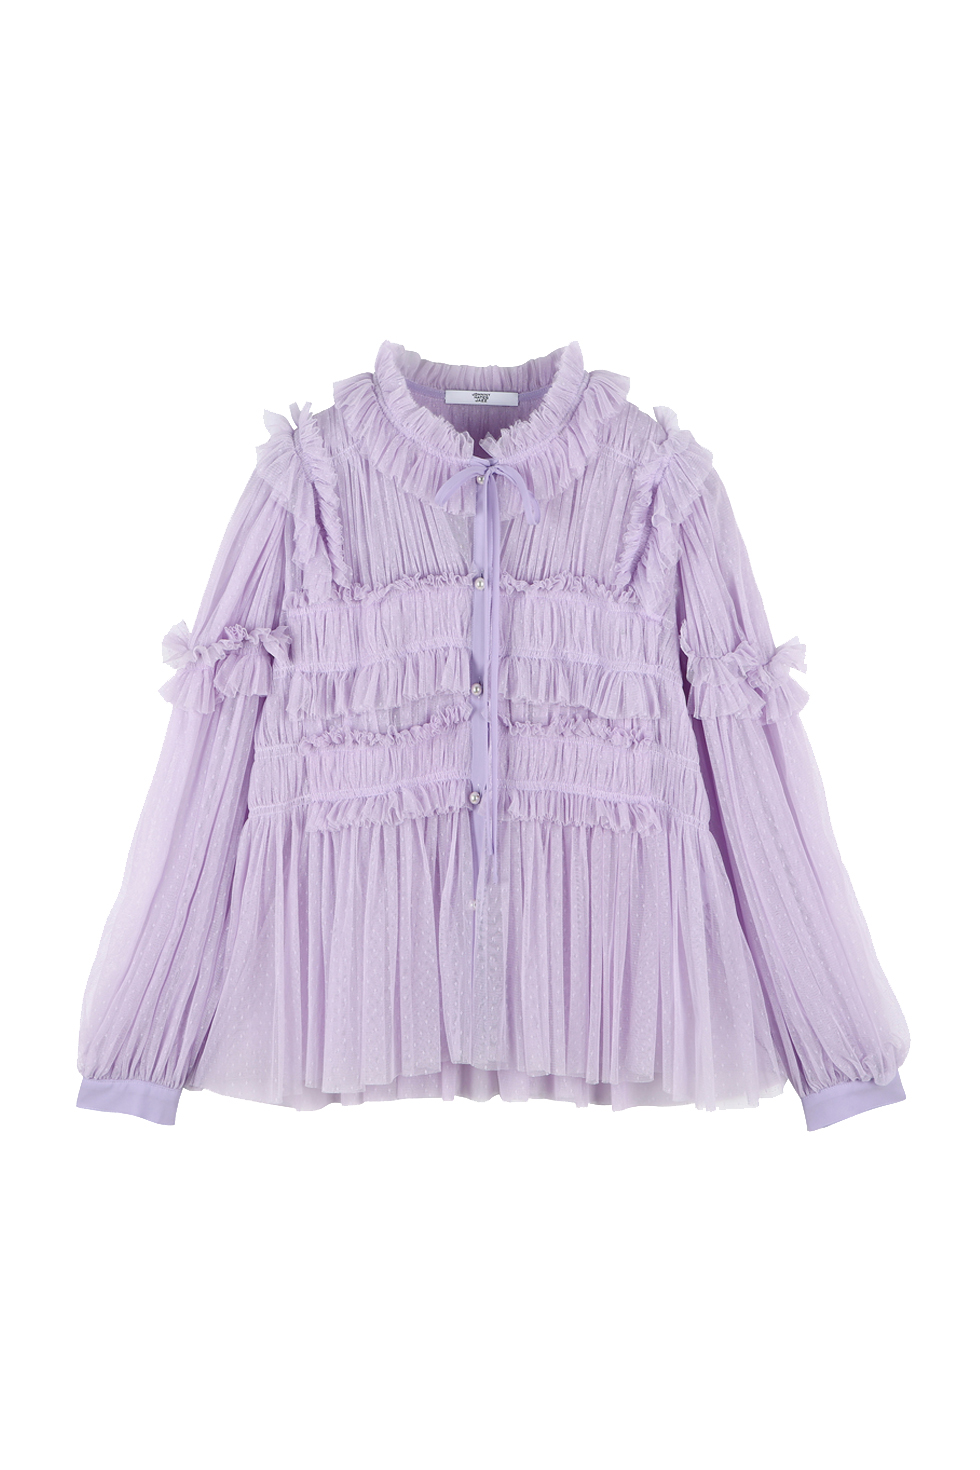 TULLE RUFFLE BLOUSE - PURPLE